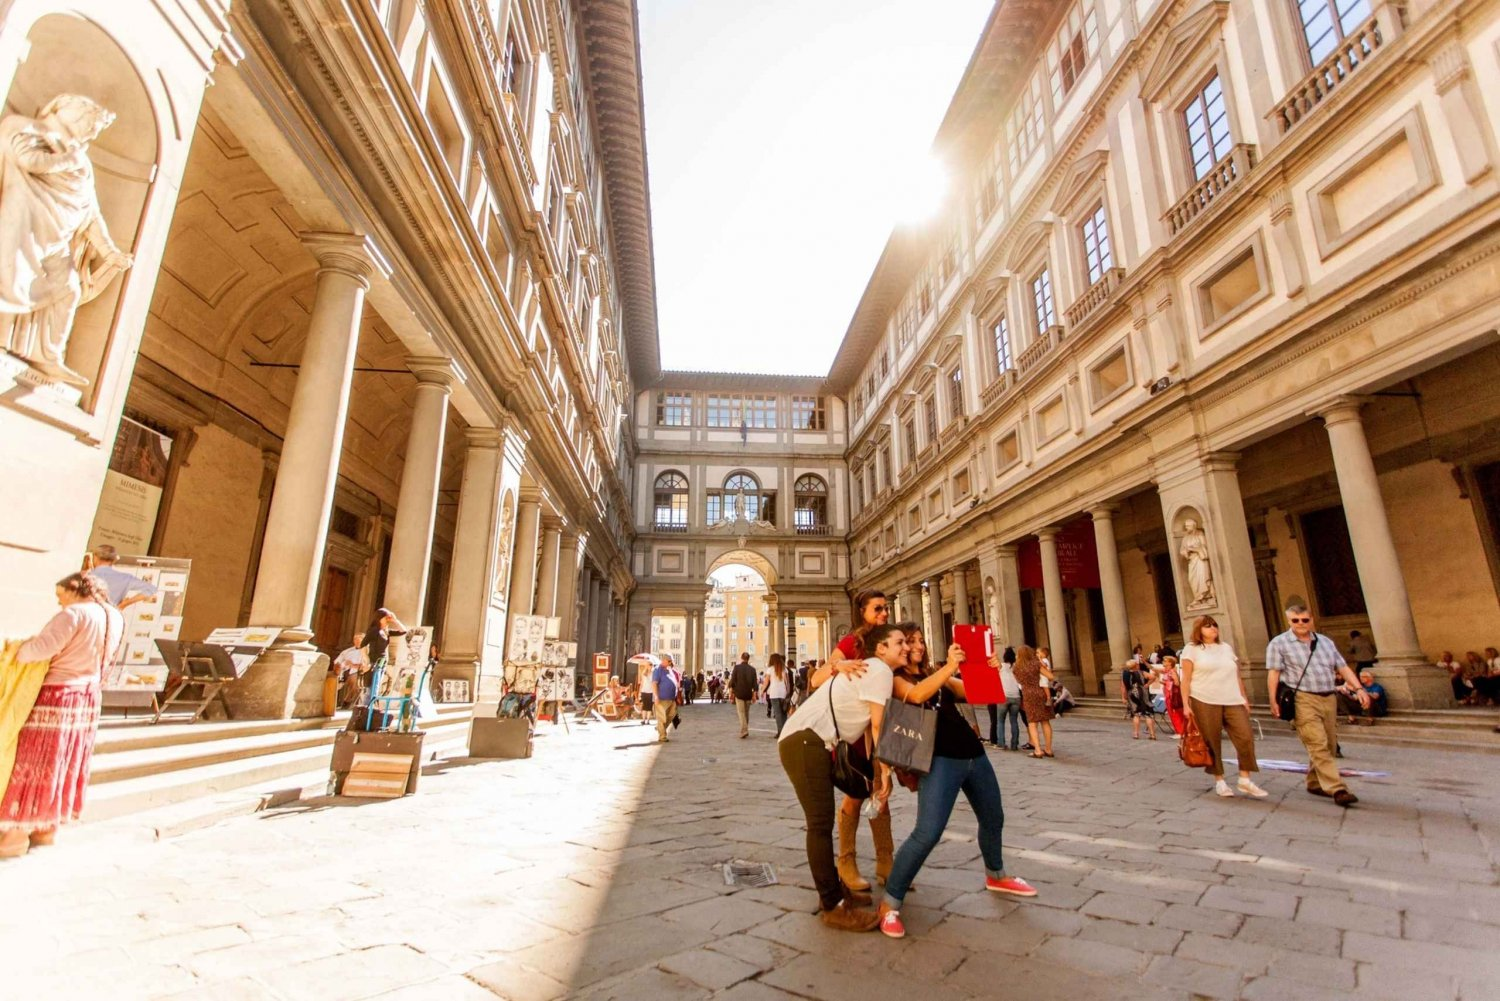 Uffizi Gallery Guided Tour and Skip-the-Line Ticket